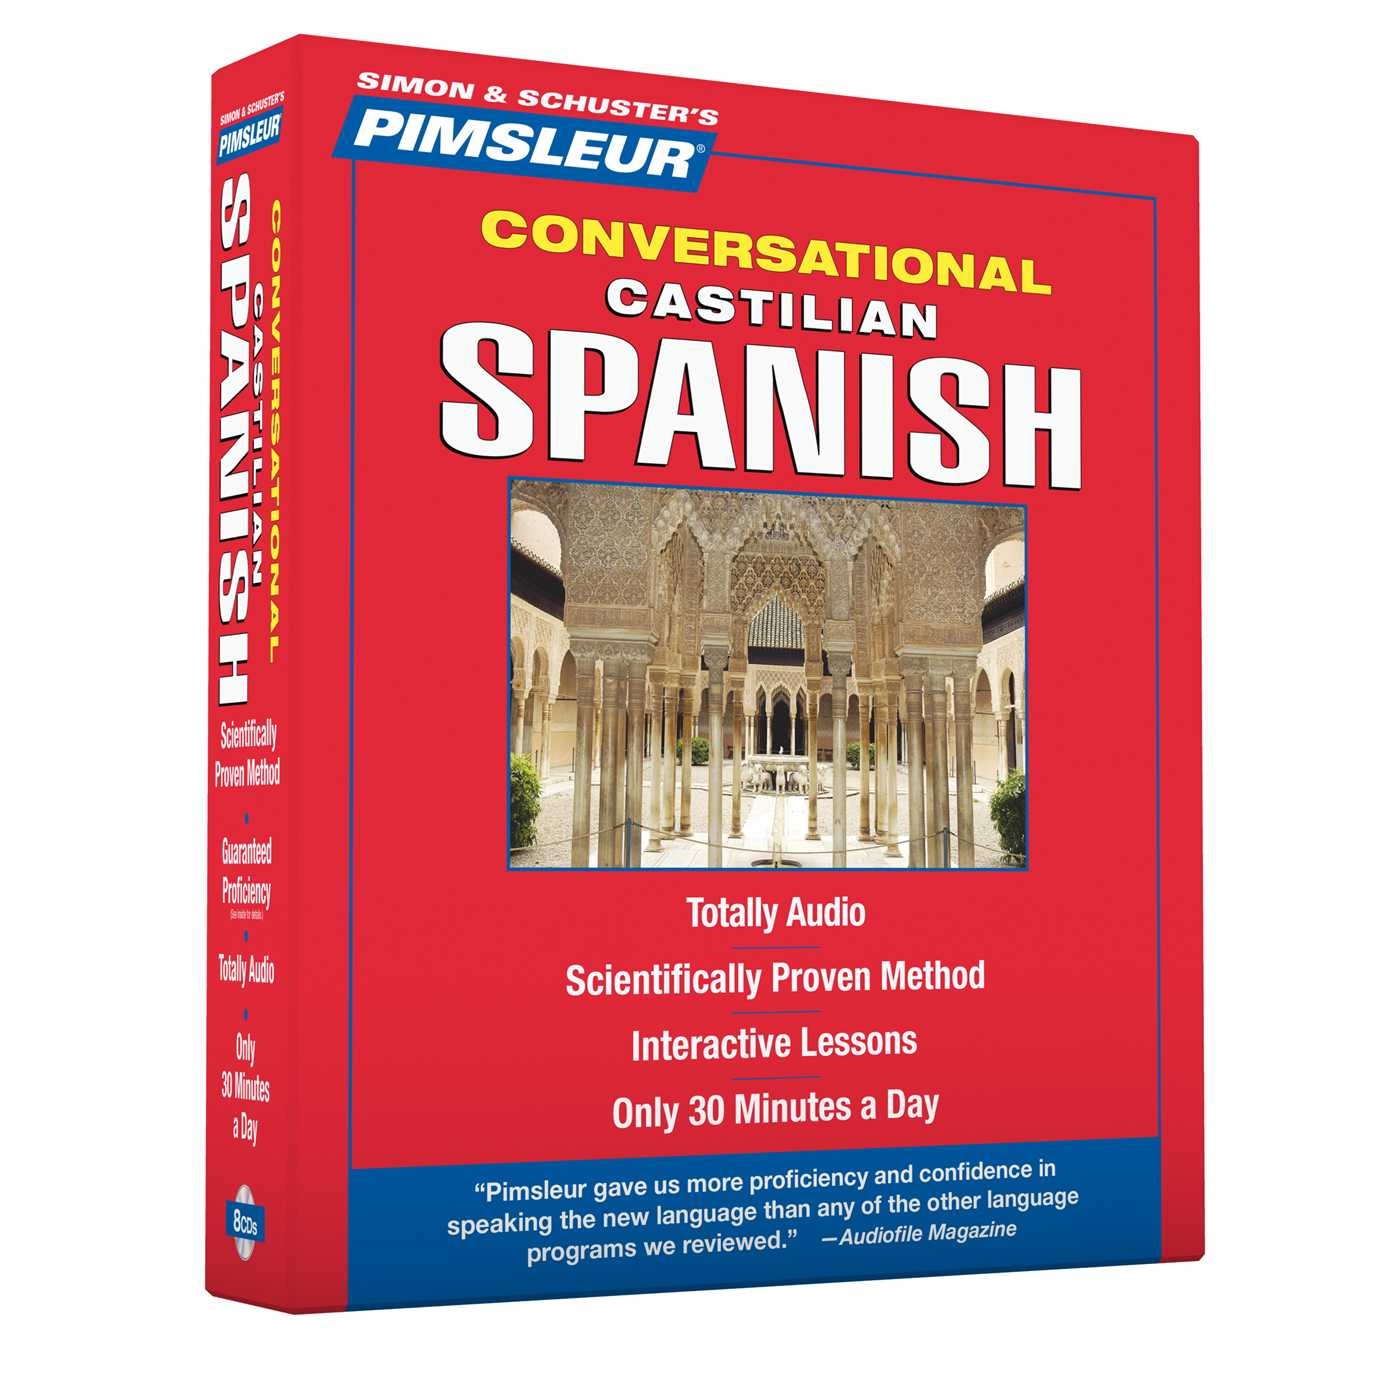 Pimsleur Spanish (Castilian) Conversational Course - Level 1 Lessons 1-16 CD : Learn to Speak and Understand Castilian Spanish with Pimsleur Language Programs